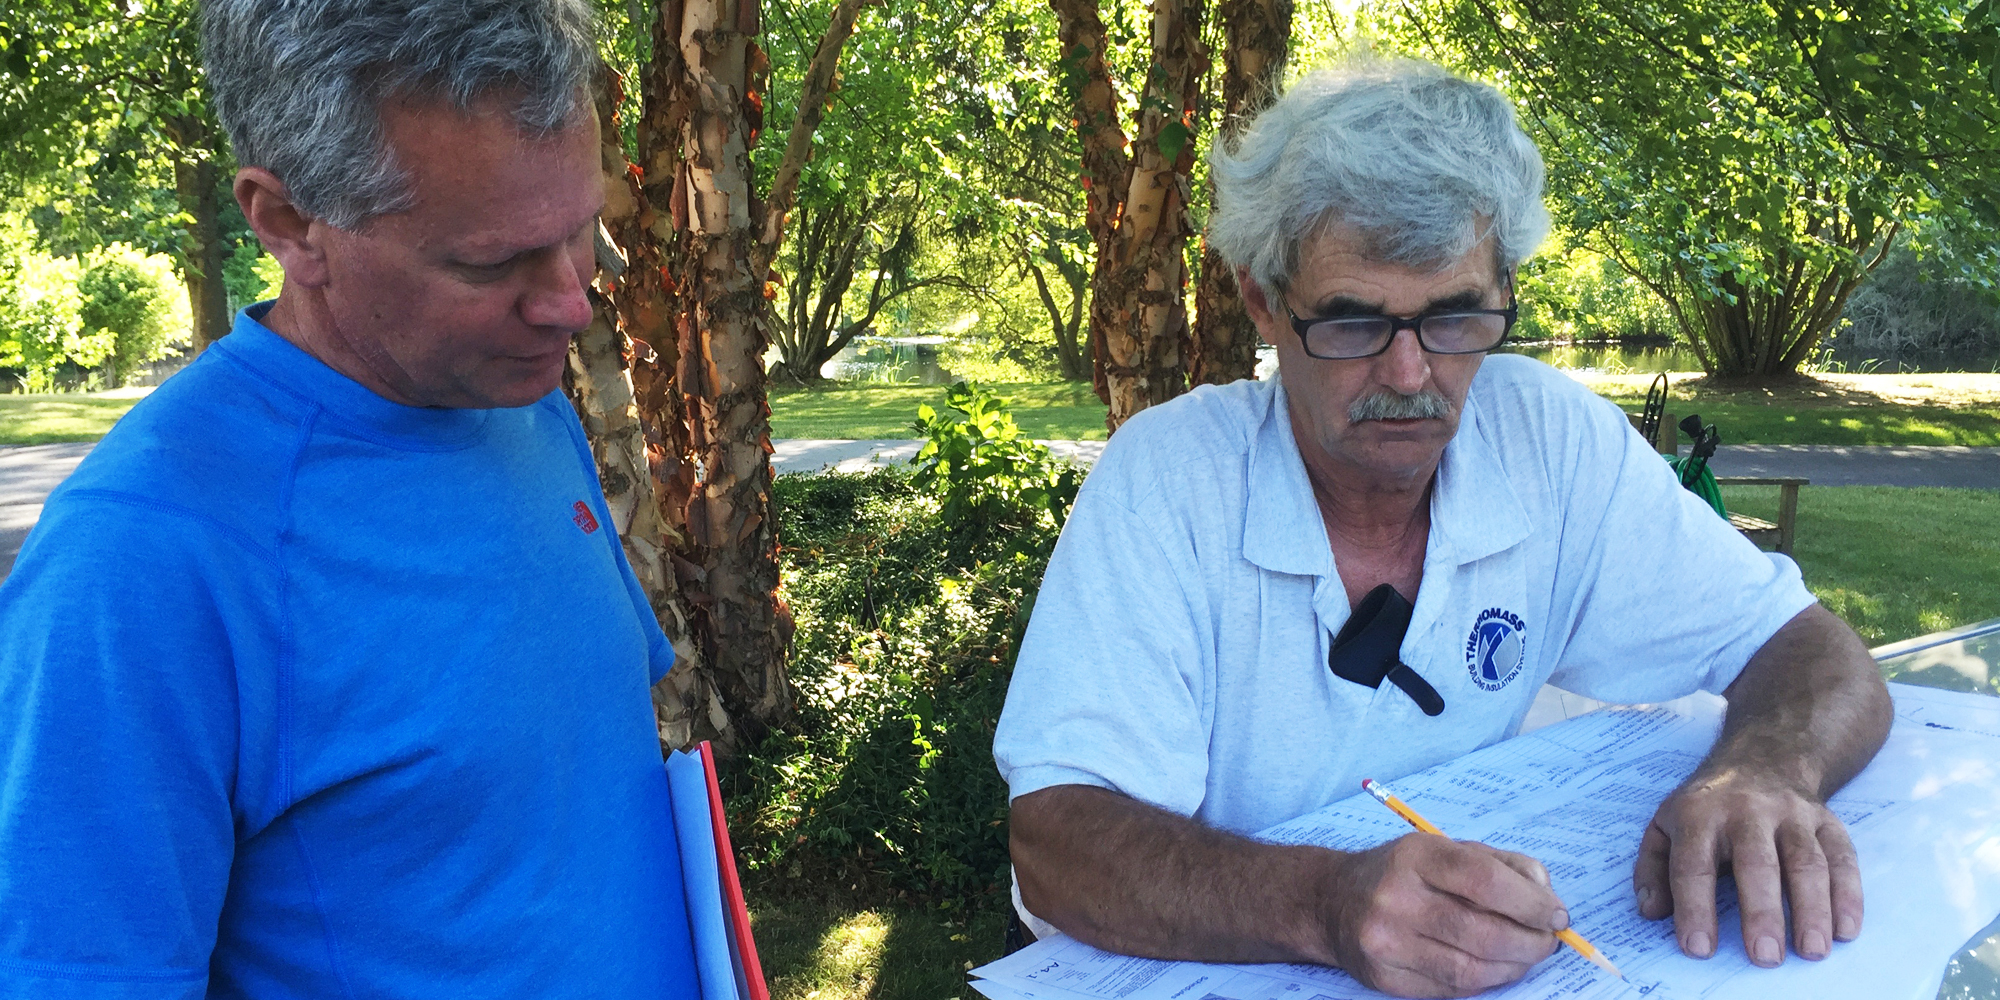 CM John O'Keefe reviews  Thermomass  plans with Dennis Purinton